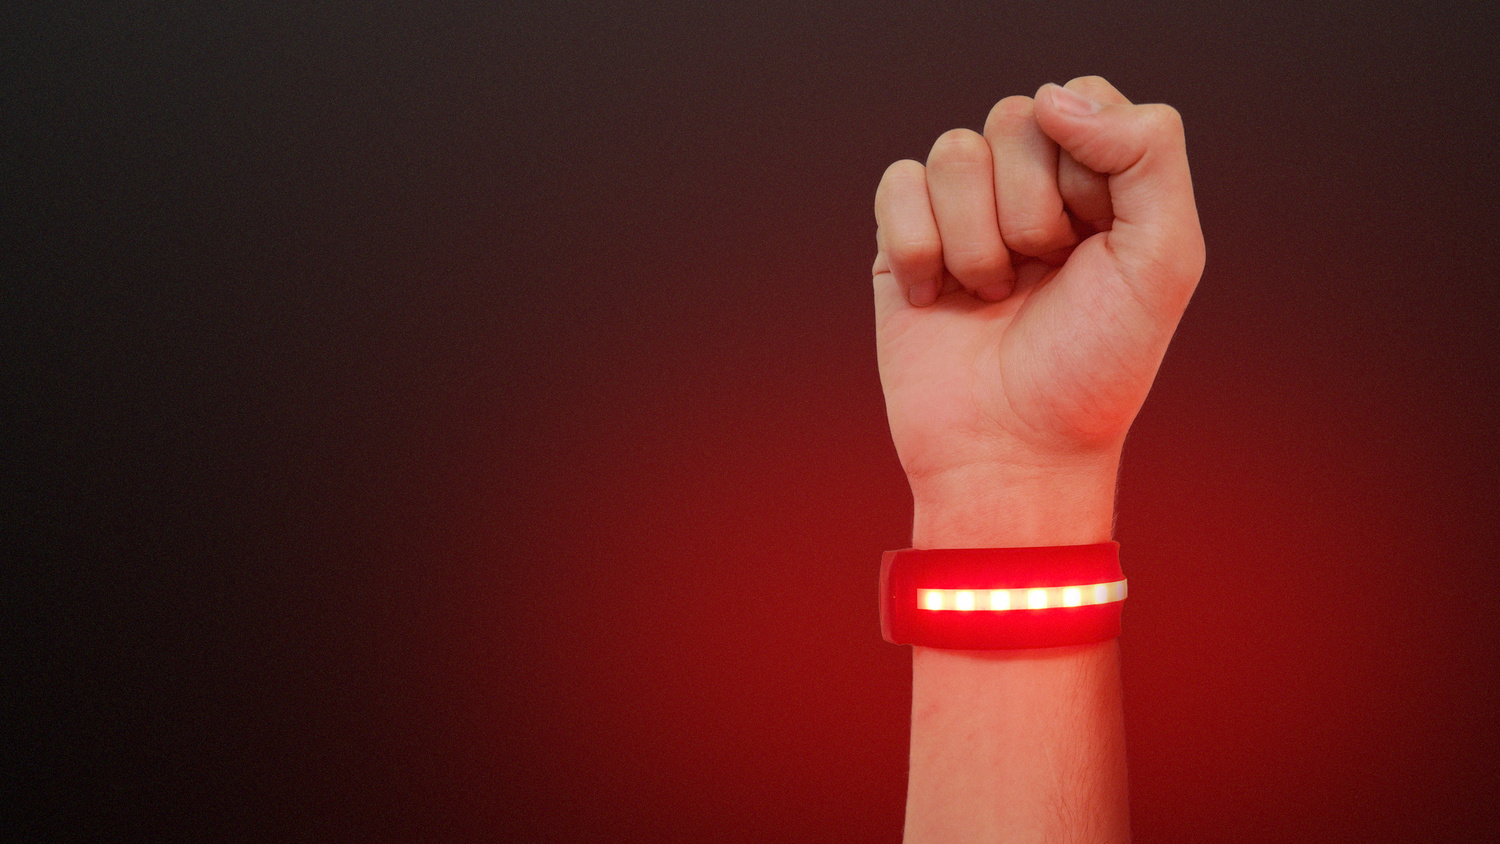 The World's First Wearable Cinematic Light | Fstoppers